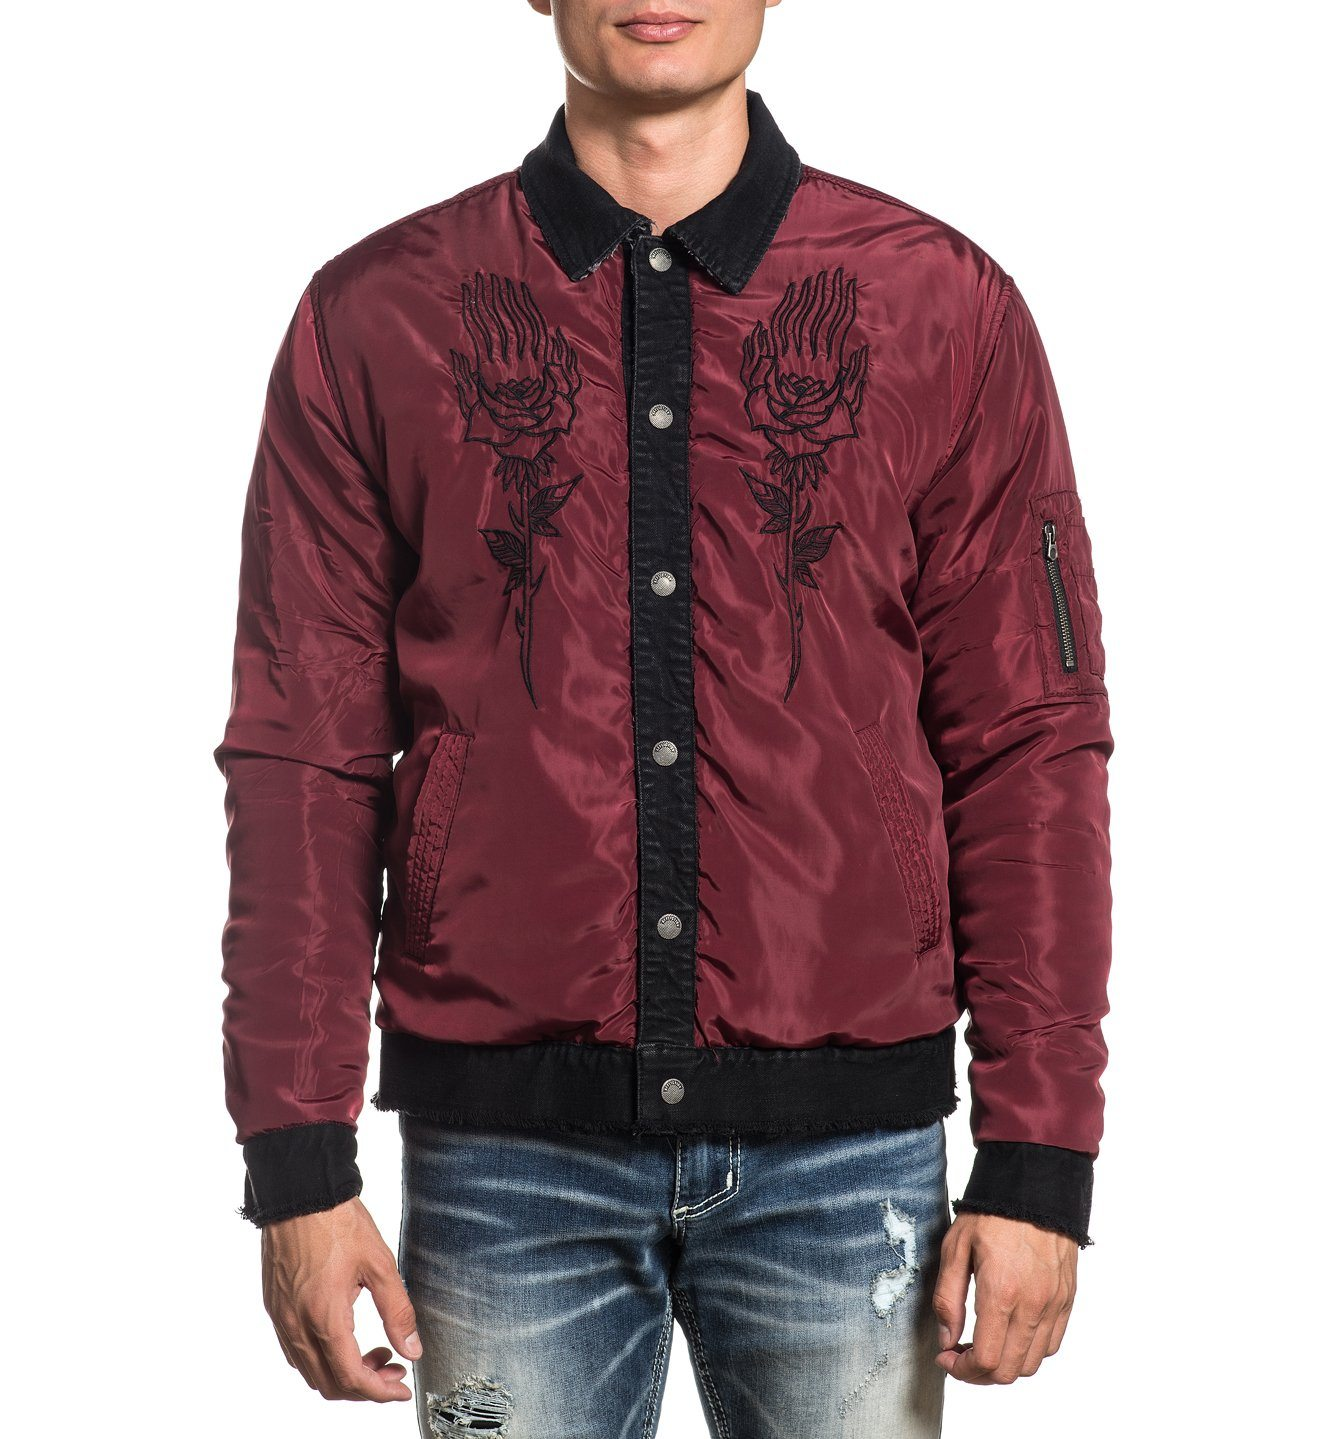 Gridlock Jacket - Reversible - Mens Jackets - Affliction Clothing